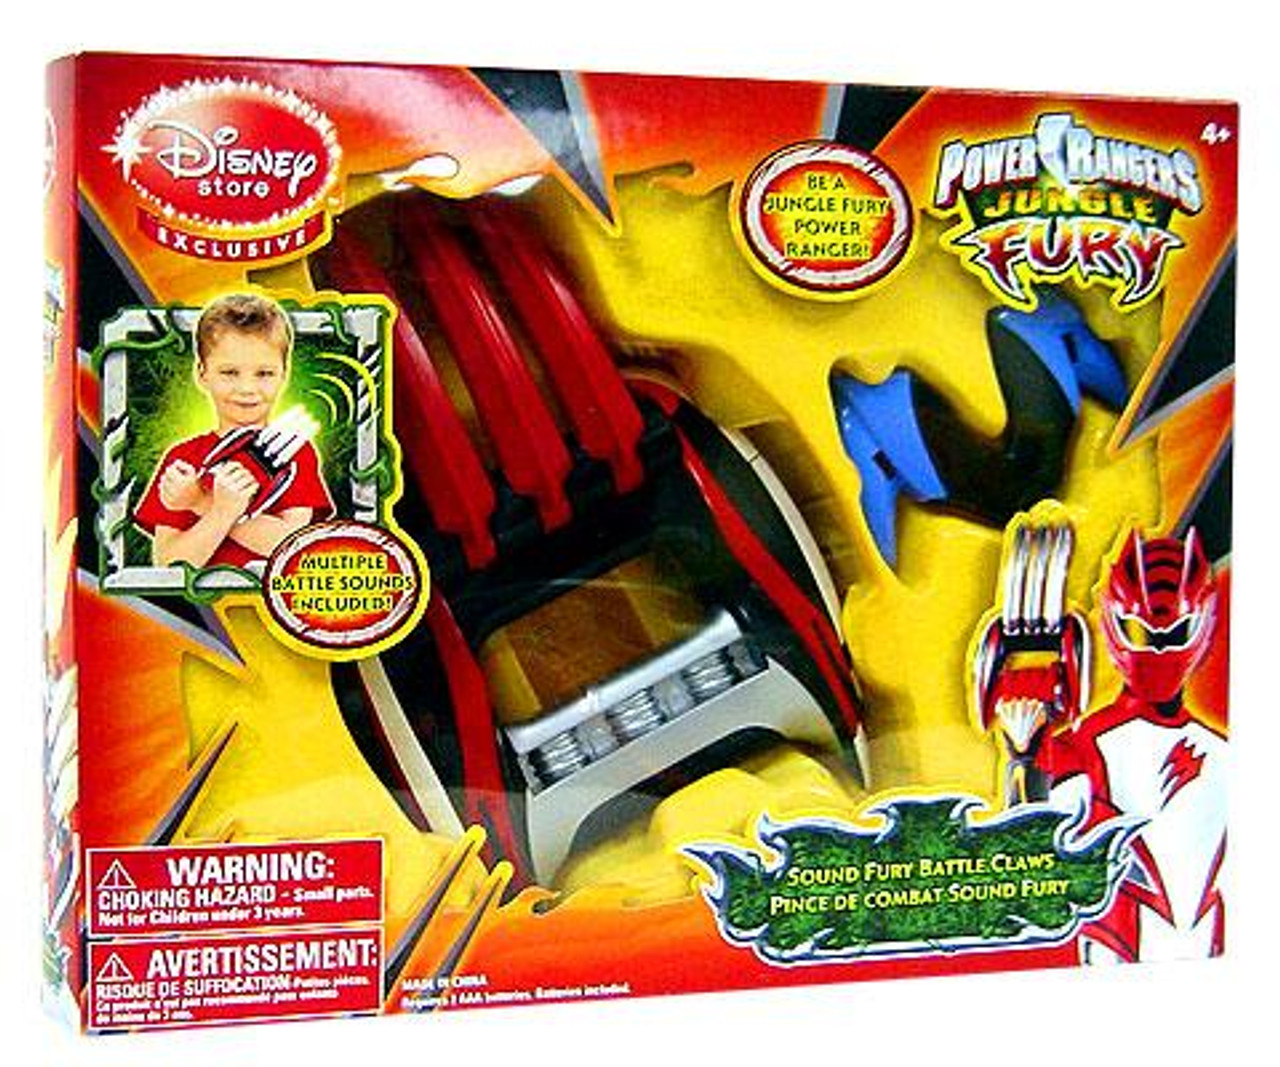 Power Rangers Jungle Fury Sound Fury Battle Claws Exclusive Roleplay Toy